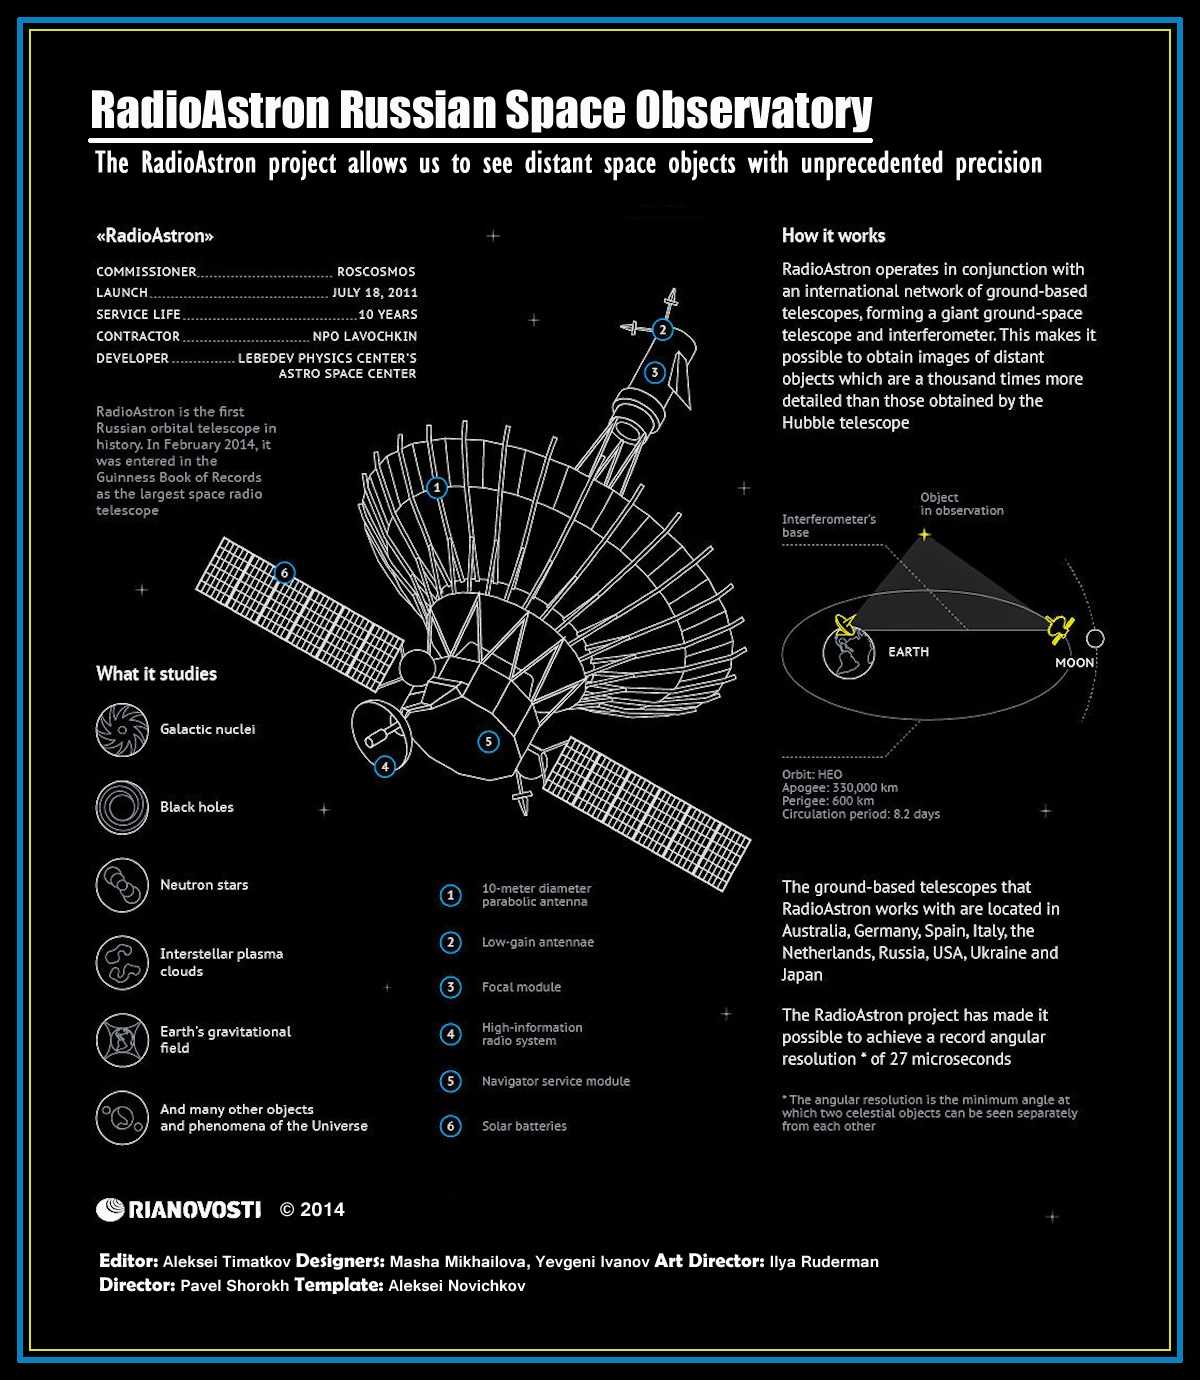 00 RIA-Novosti Infographic. RadioAstron Russian Space Observatory. 21.04.14